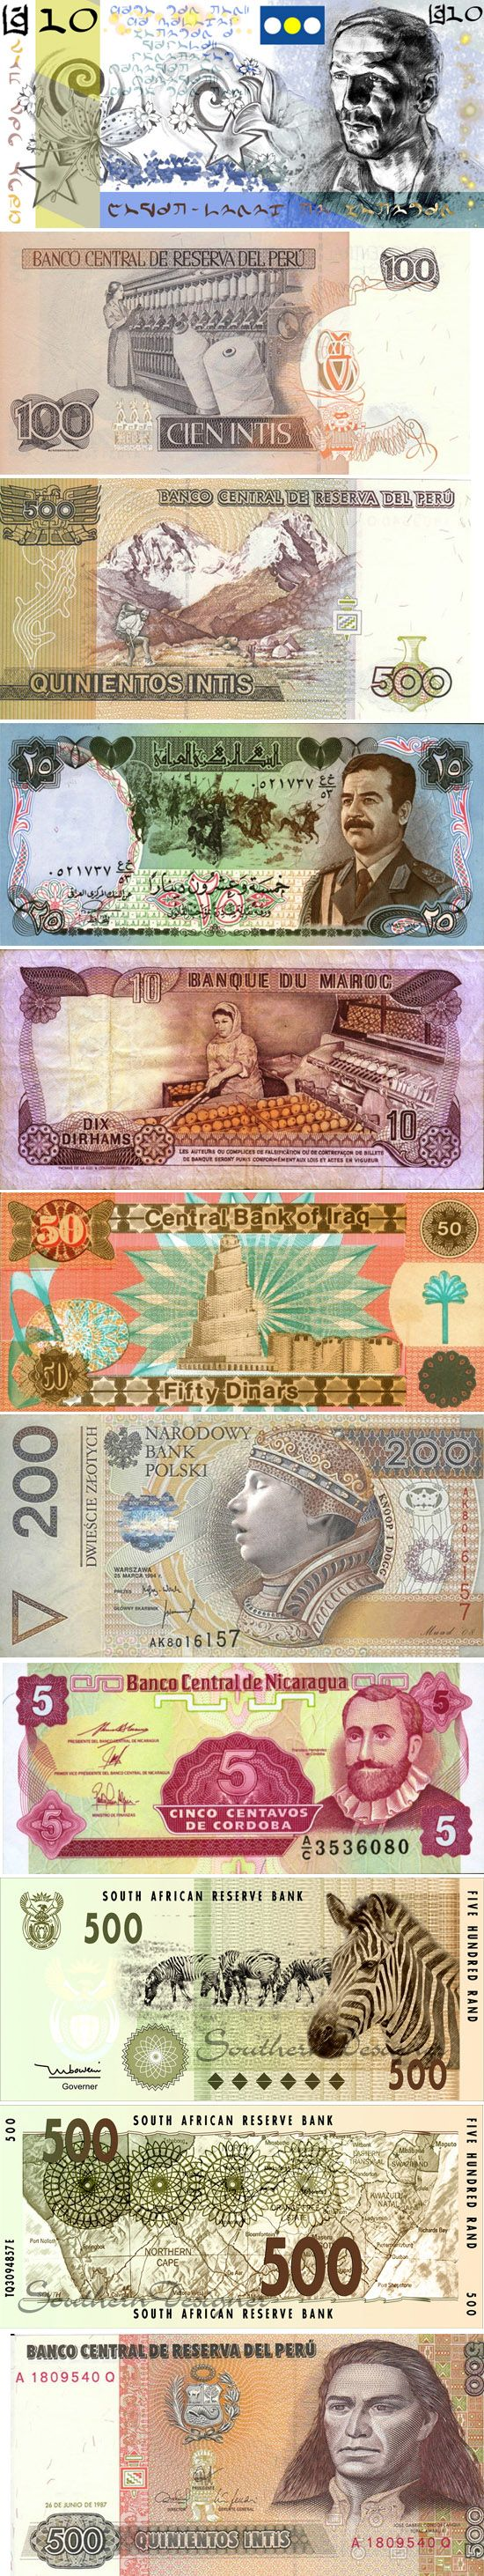 Beautiful Artwork and Graphic Designing On a Banknote - Color of Money..